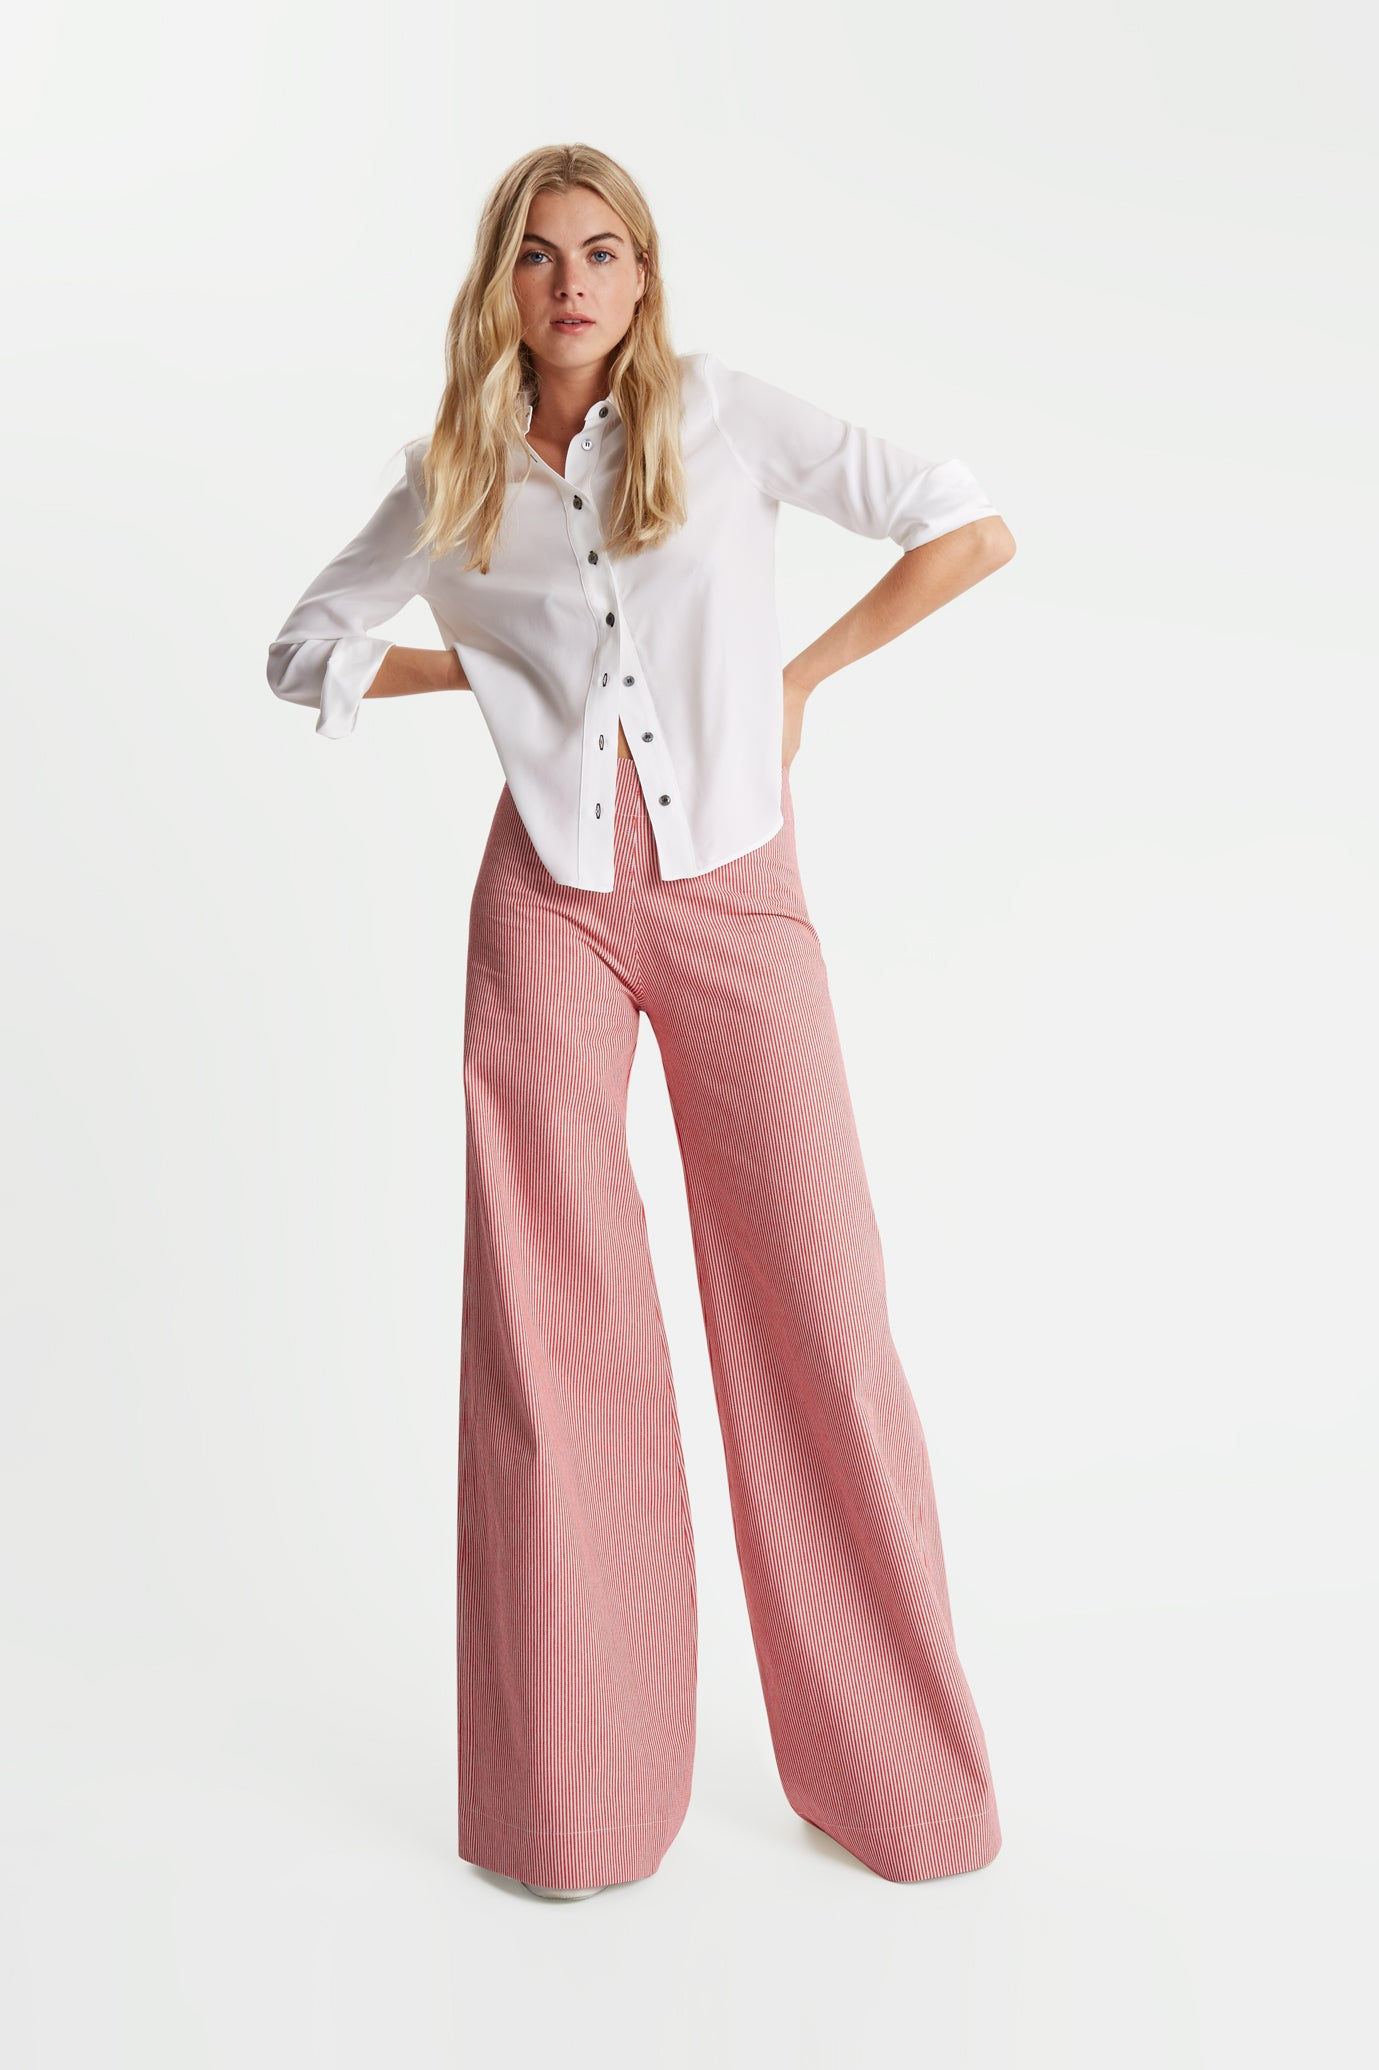 The Flare Trousers - Red & Black Candy Stripe Cotton - SERENA BUTE